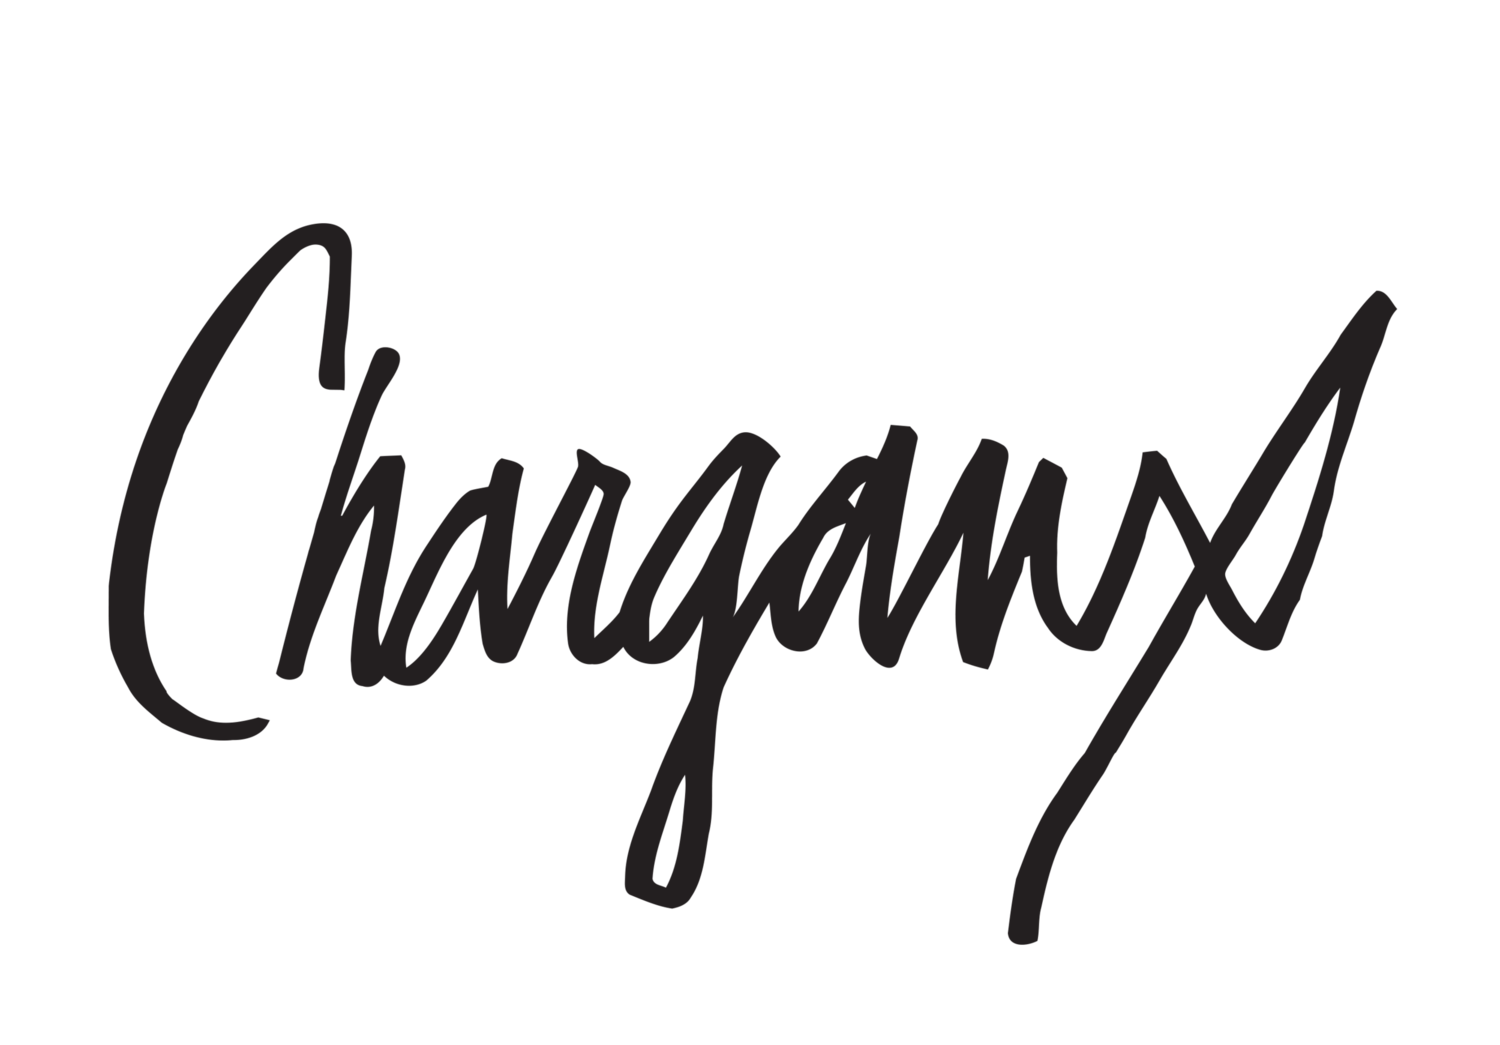 CHARGAUX